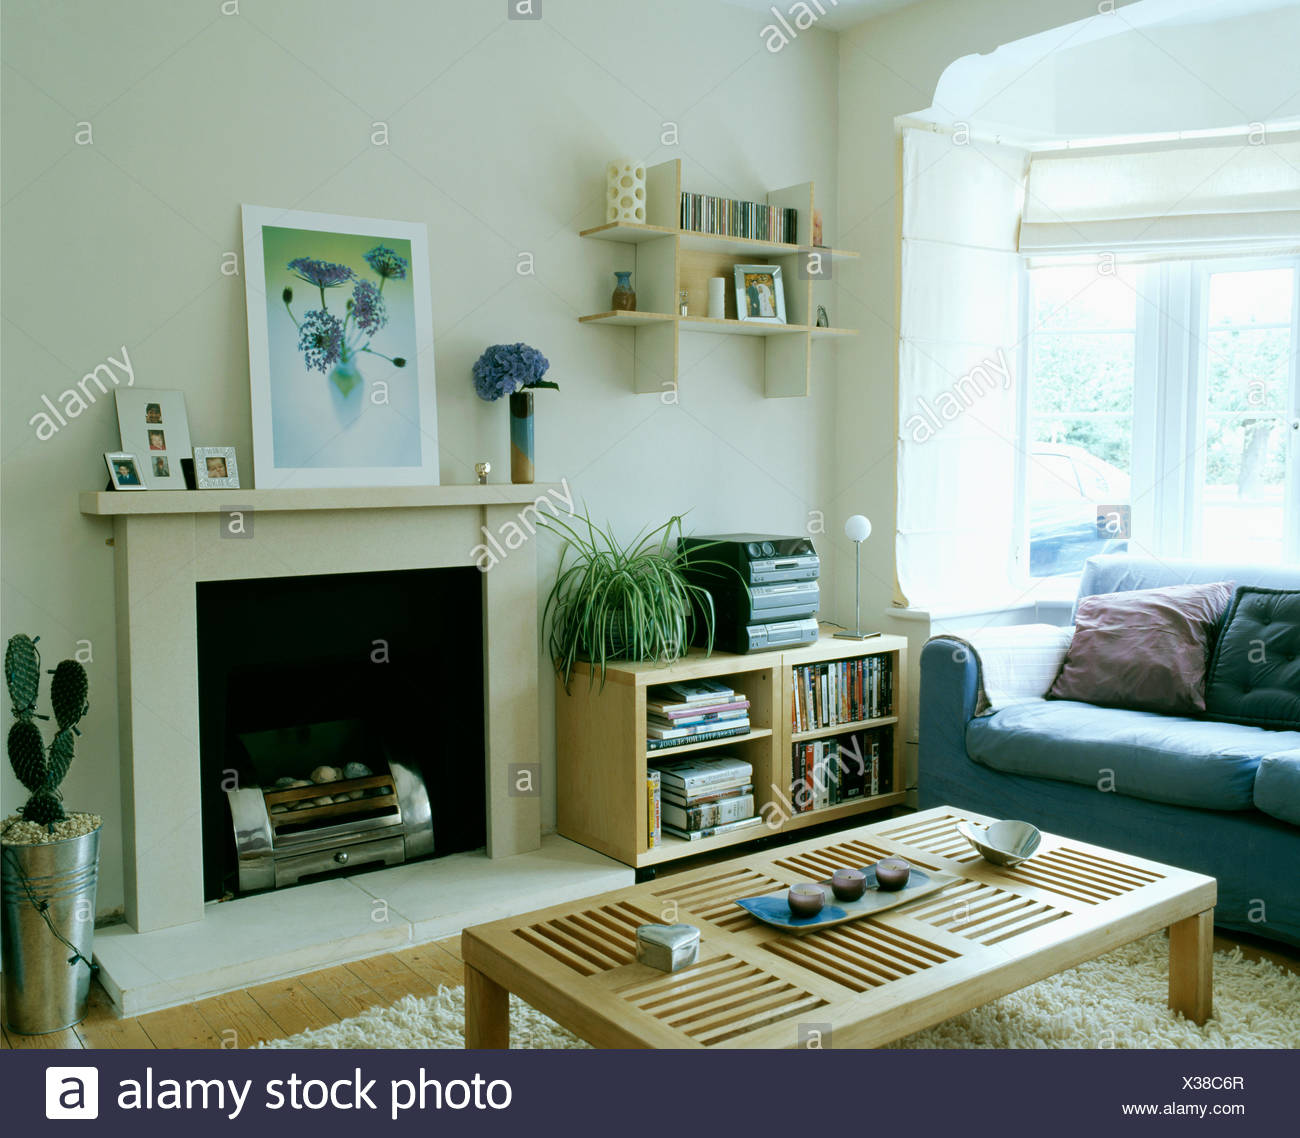 Small Wall Shelves Above Low Pale Wood Shelf Unit With Music Centre In  Modern White Living Room With Simple Coffee Table